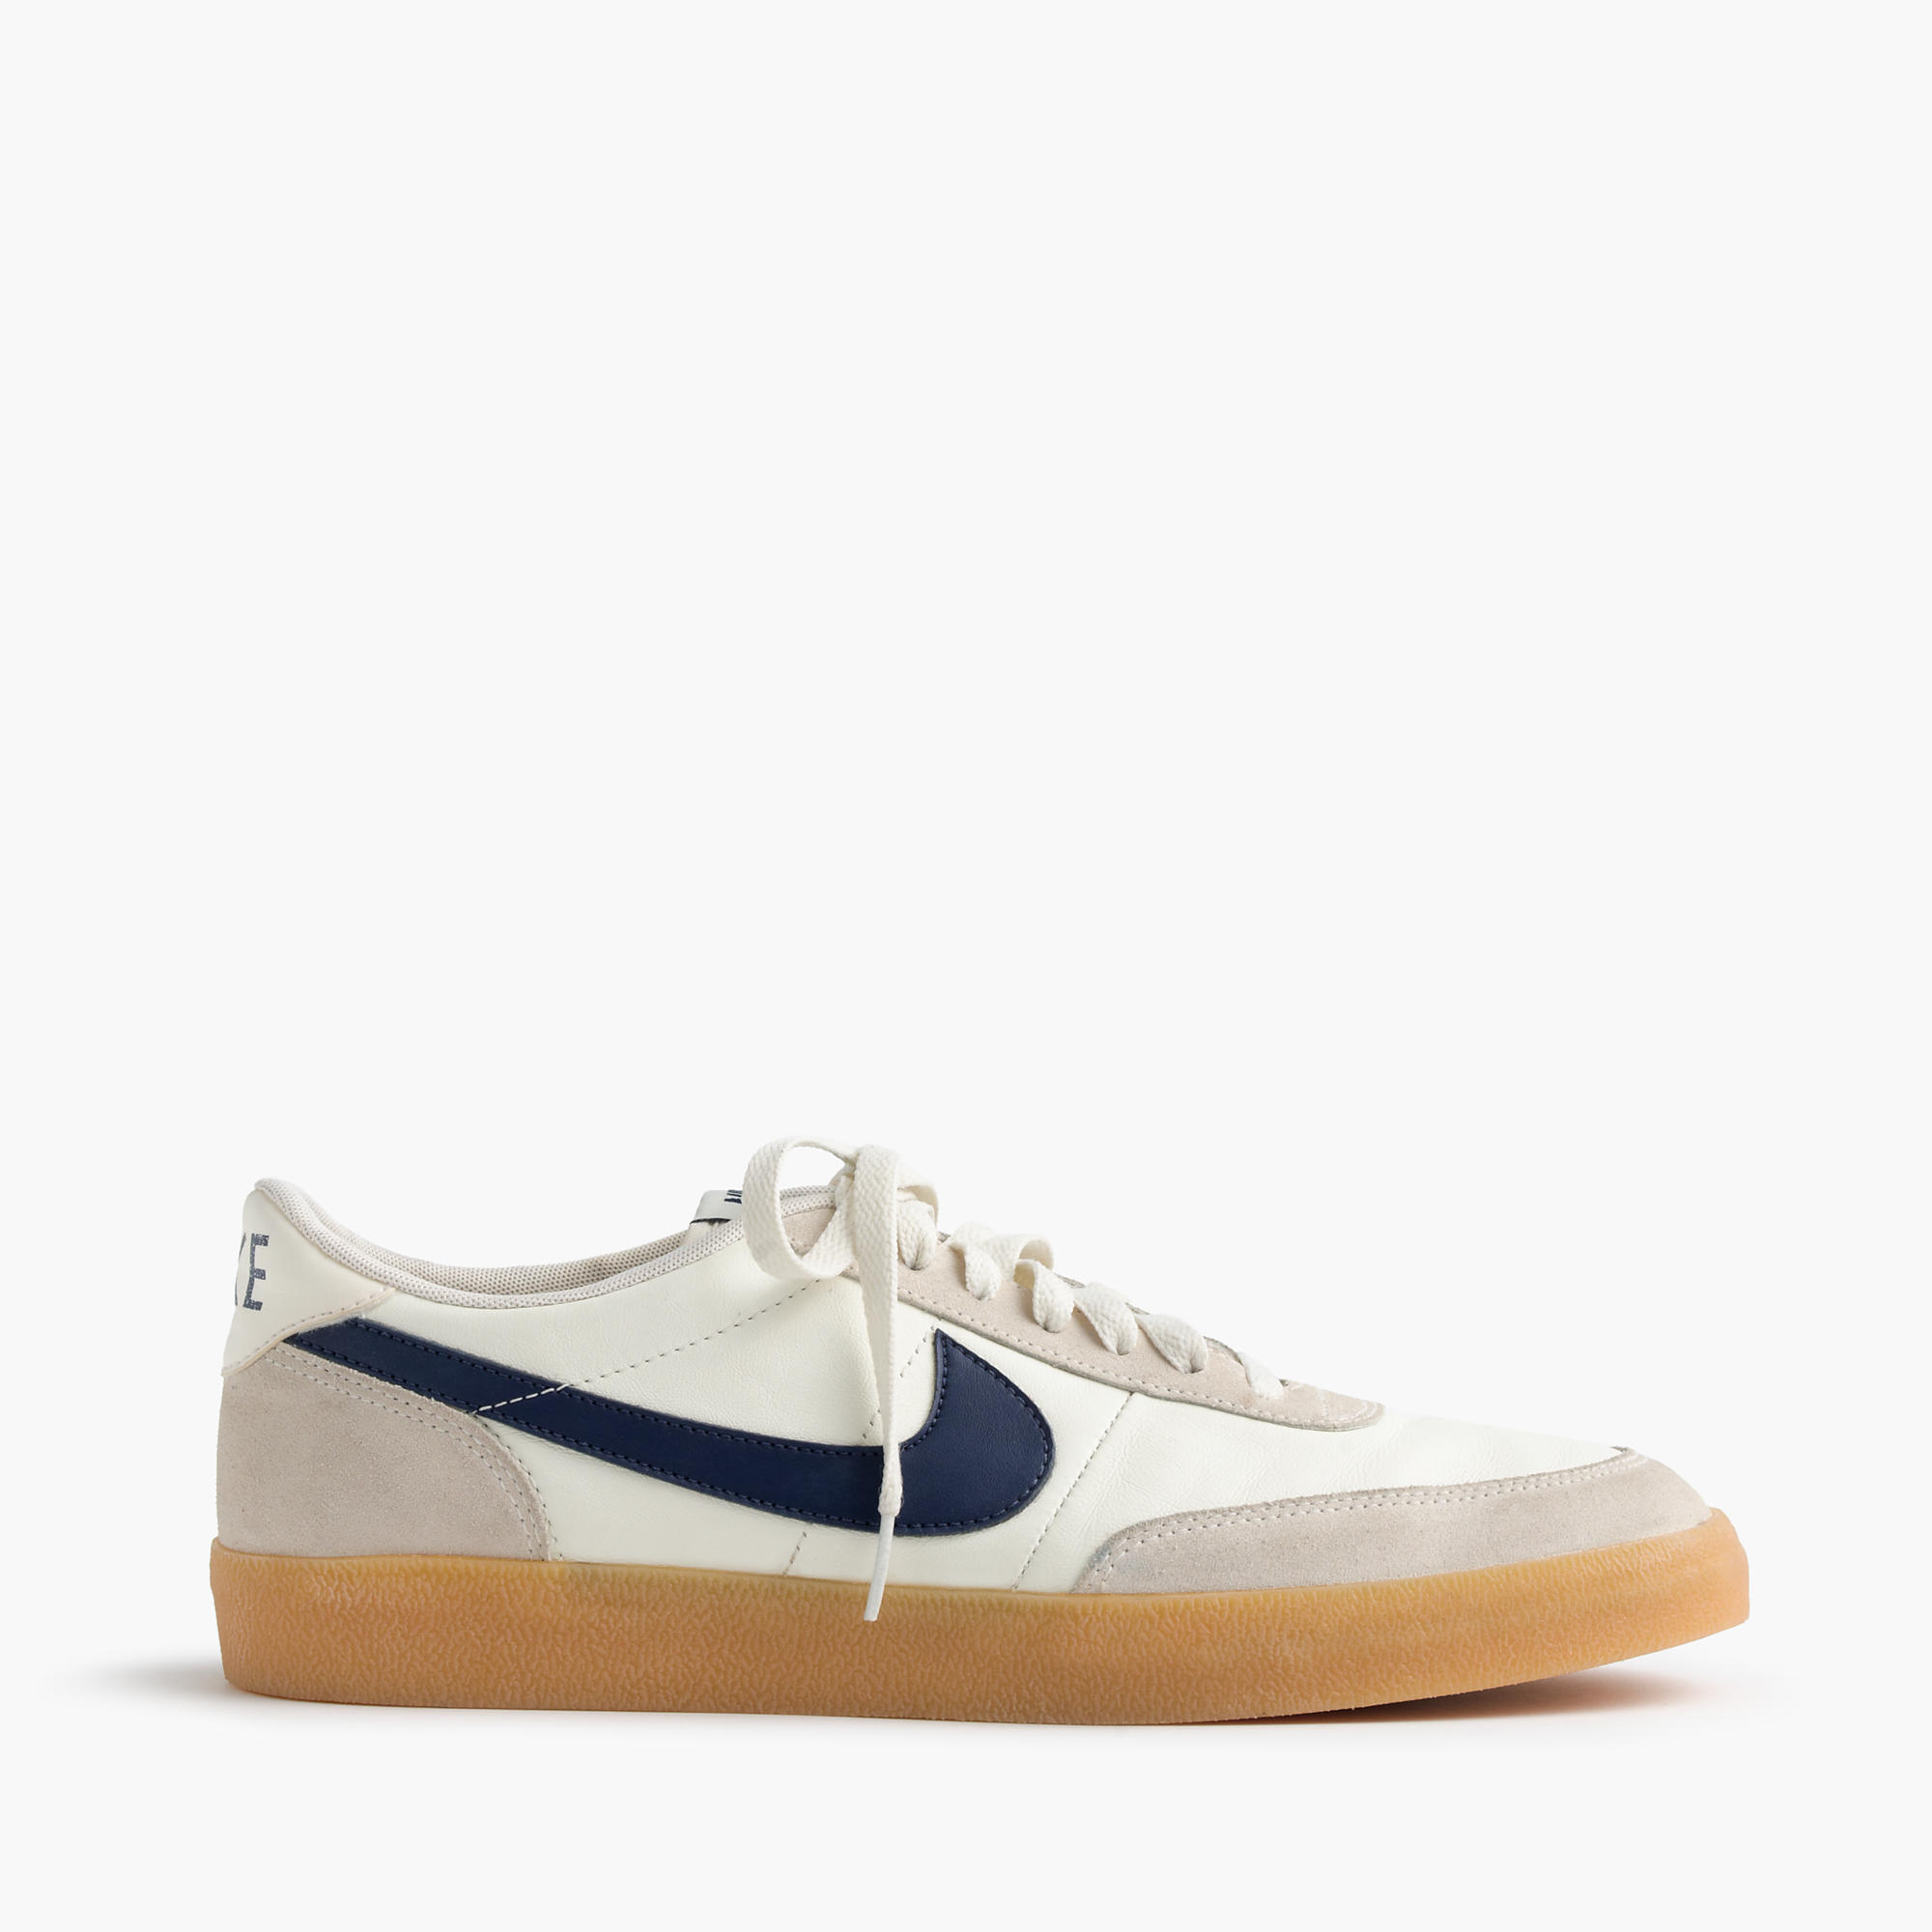 【預定】NIKE FOR J.CREW KILLSHOT 2 SNEAKERS 鞋